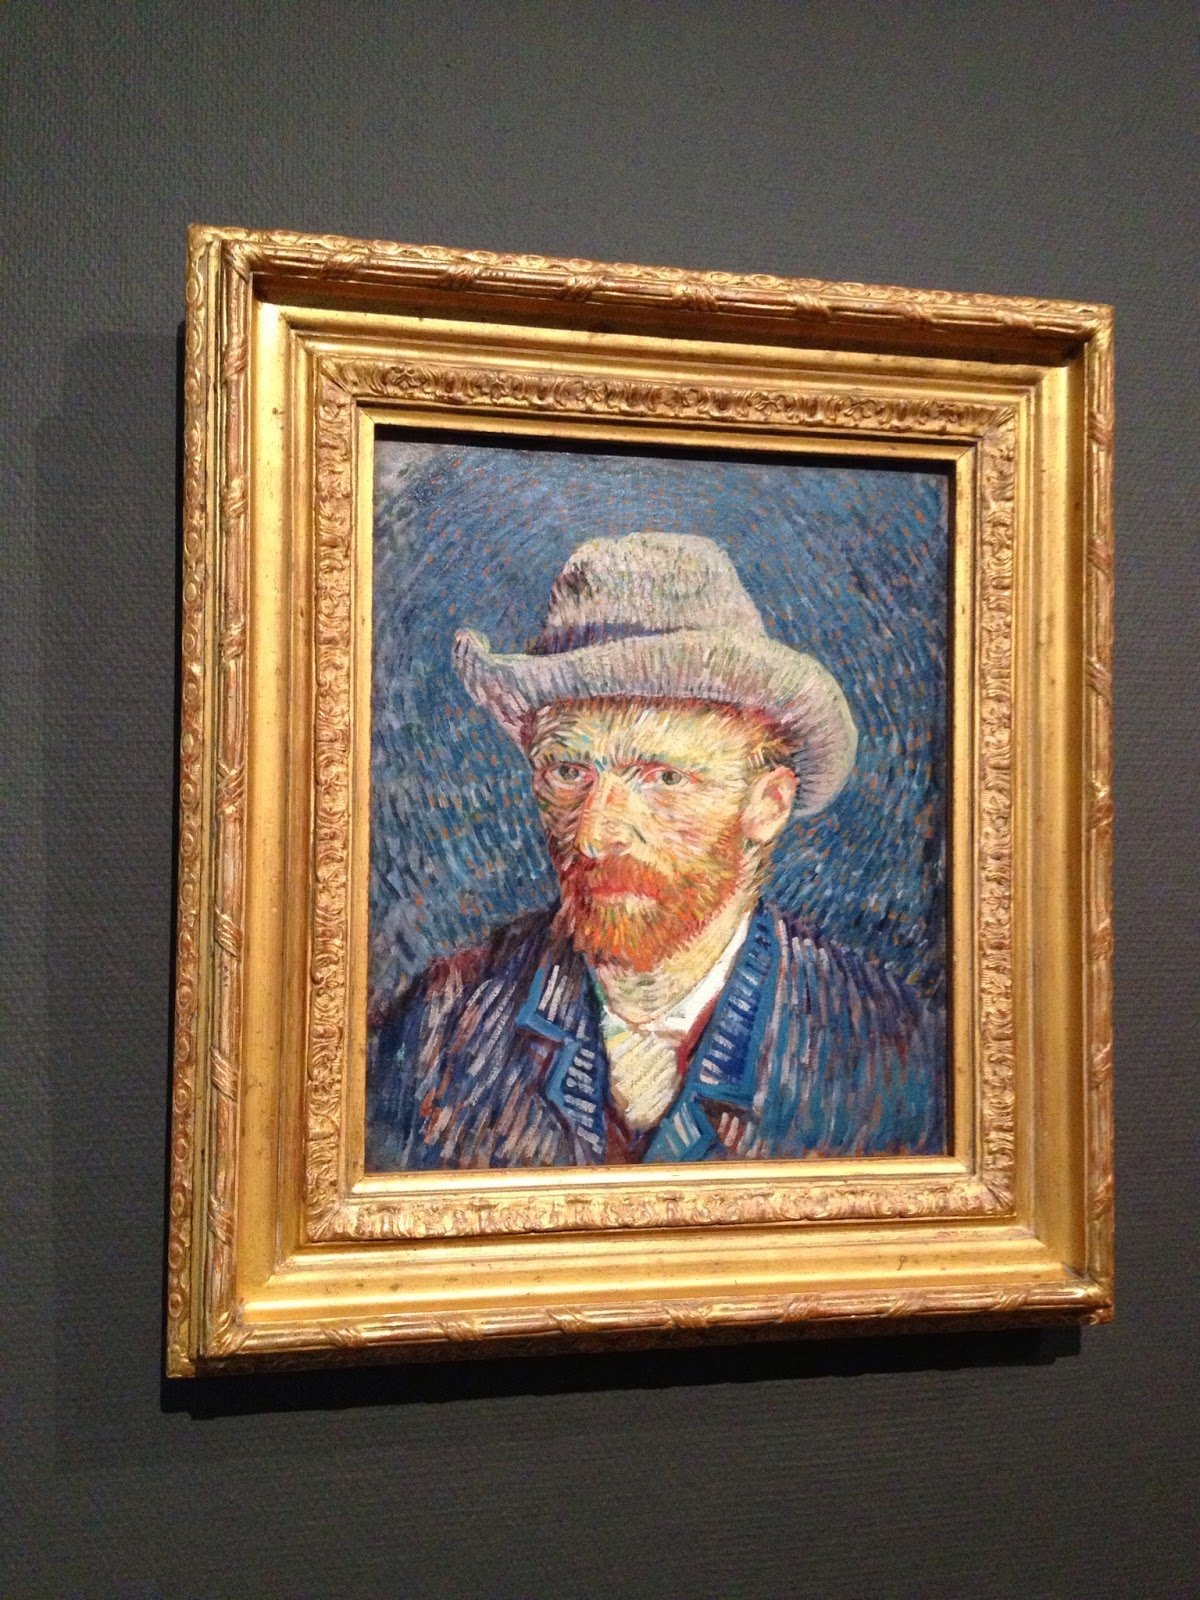 Amsterdam - One of many of Van Gogh's self-portraits